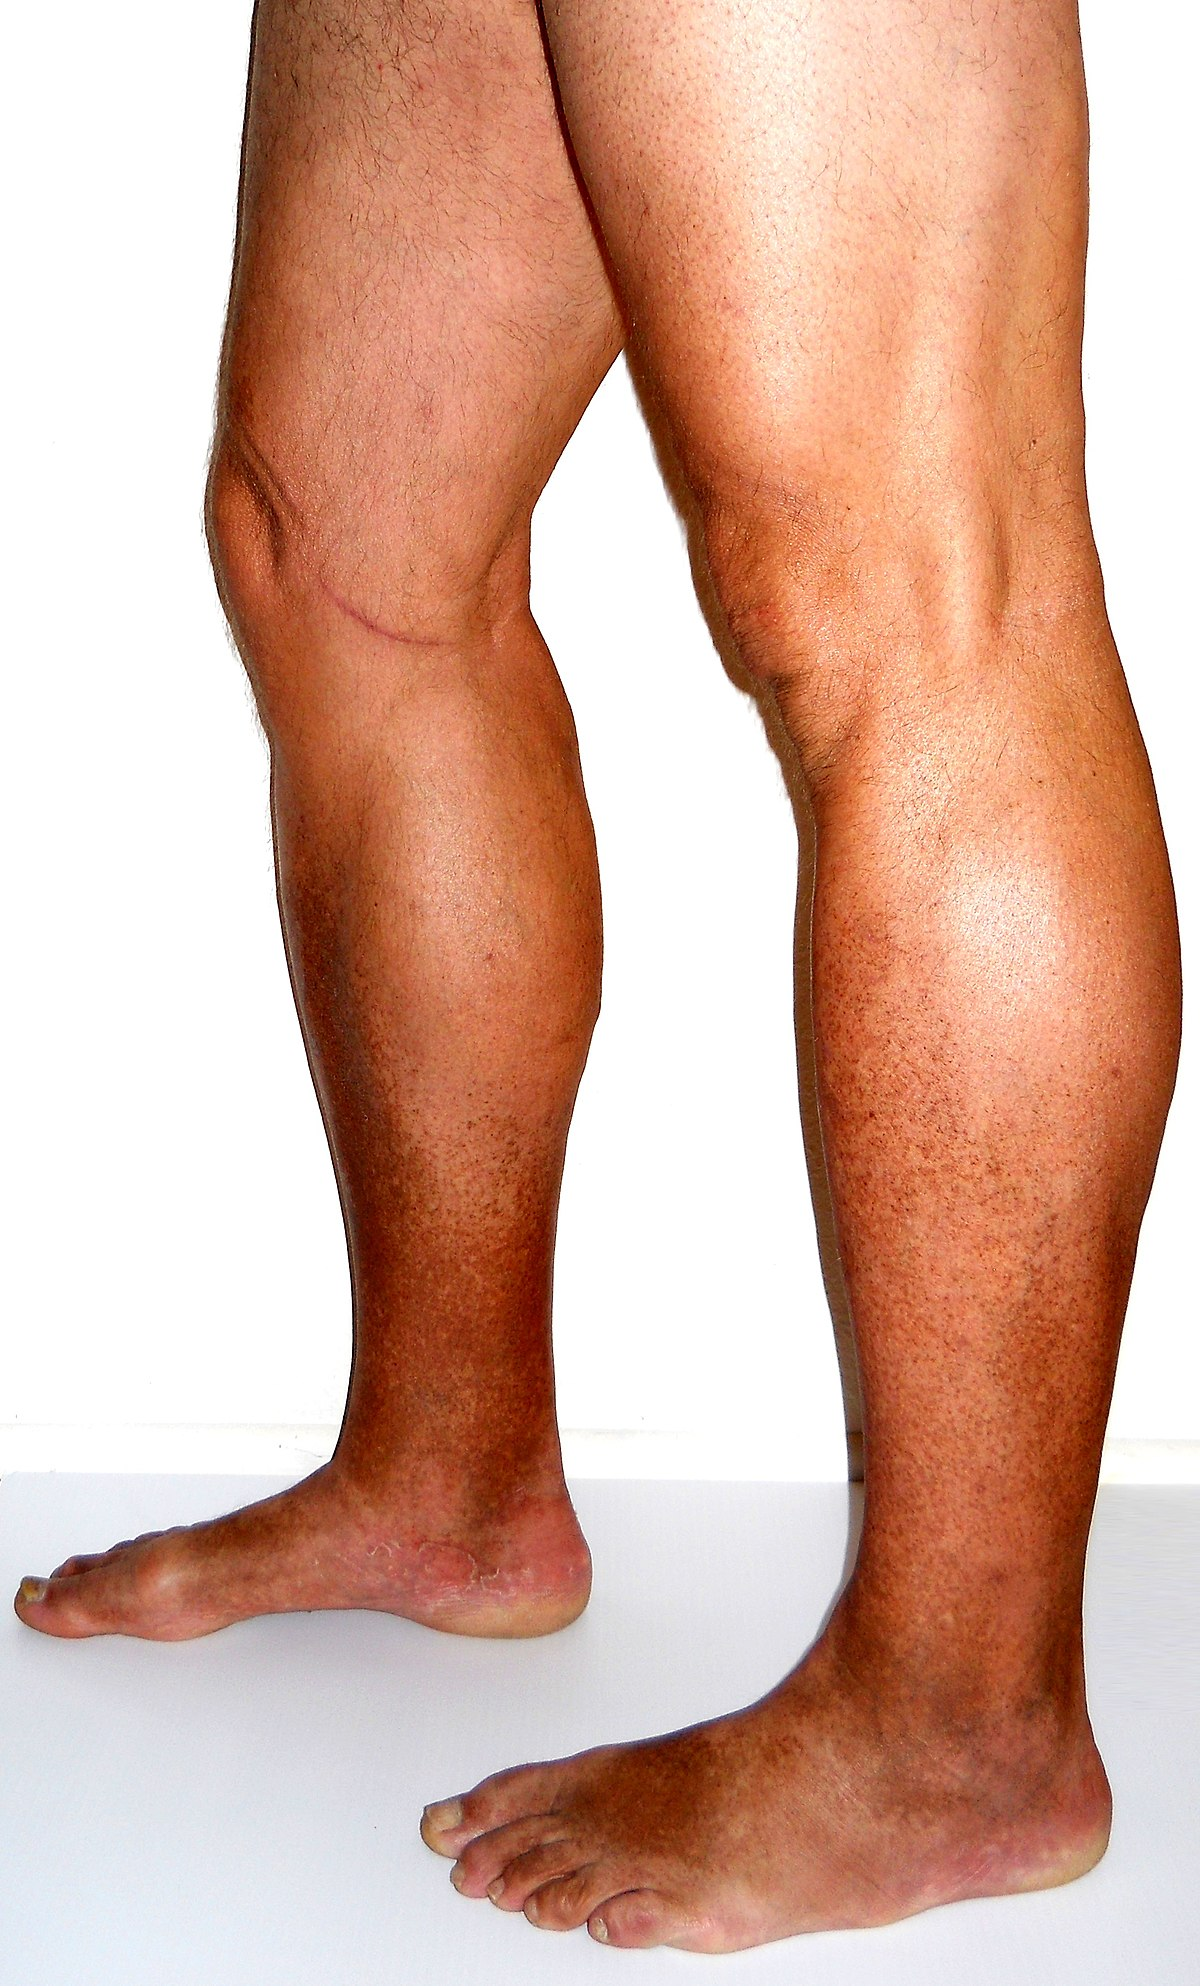 Chronic Venous Insufficiency Wikipedia